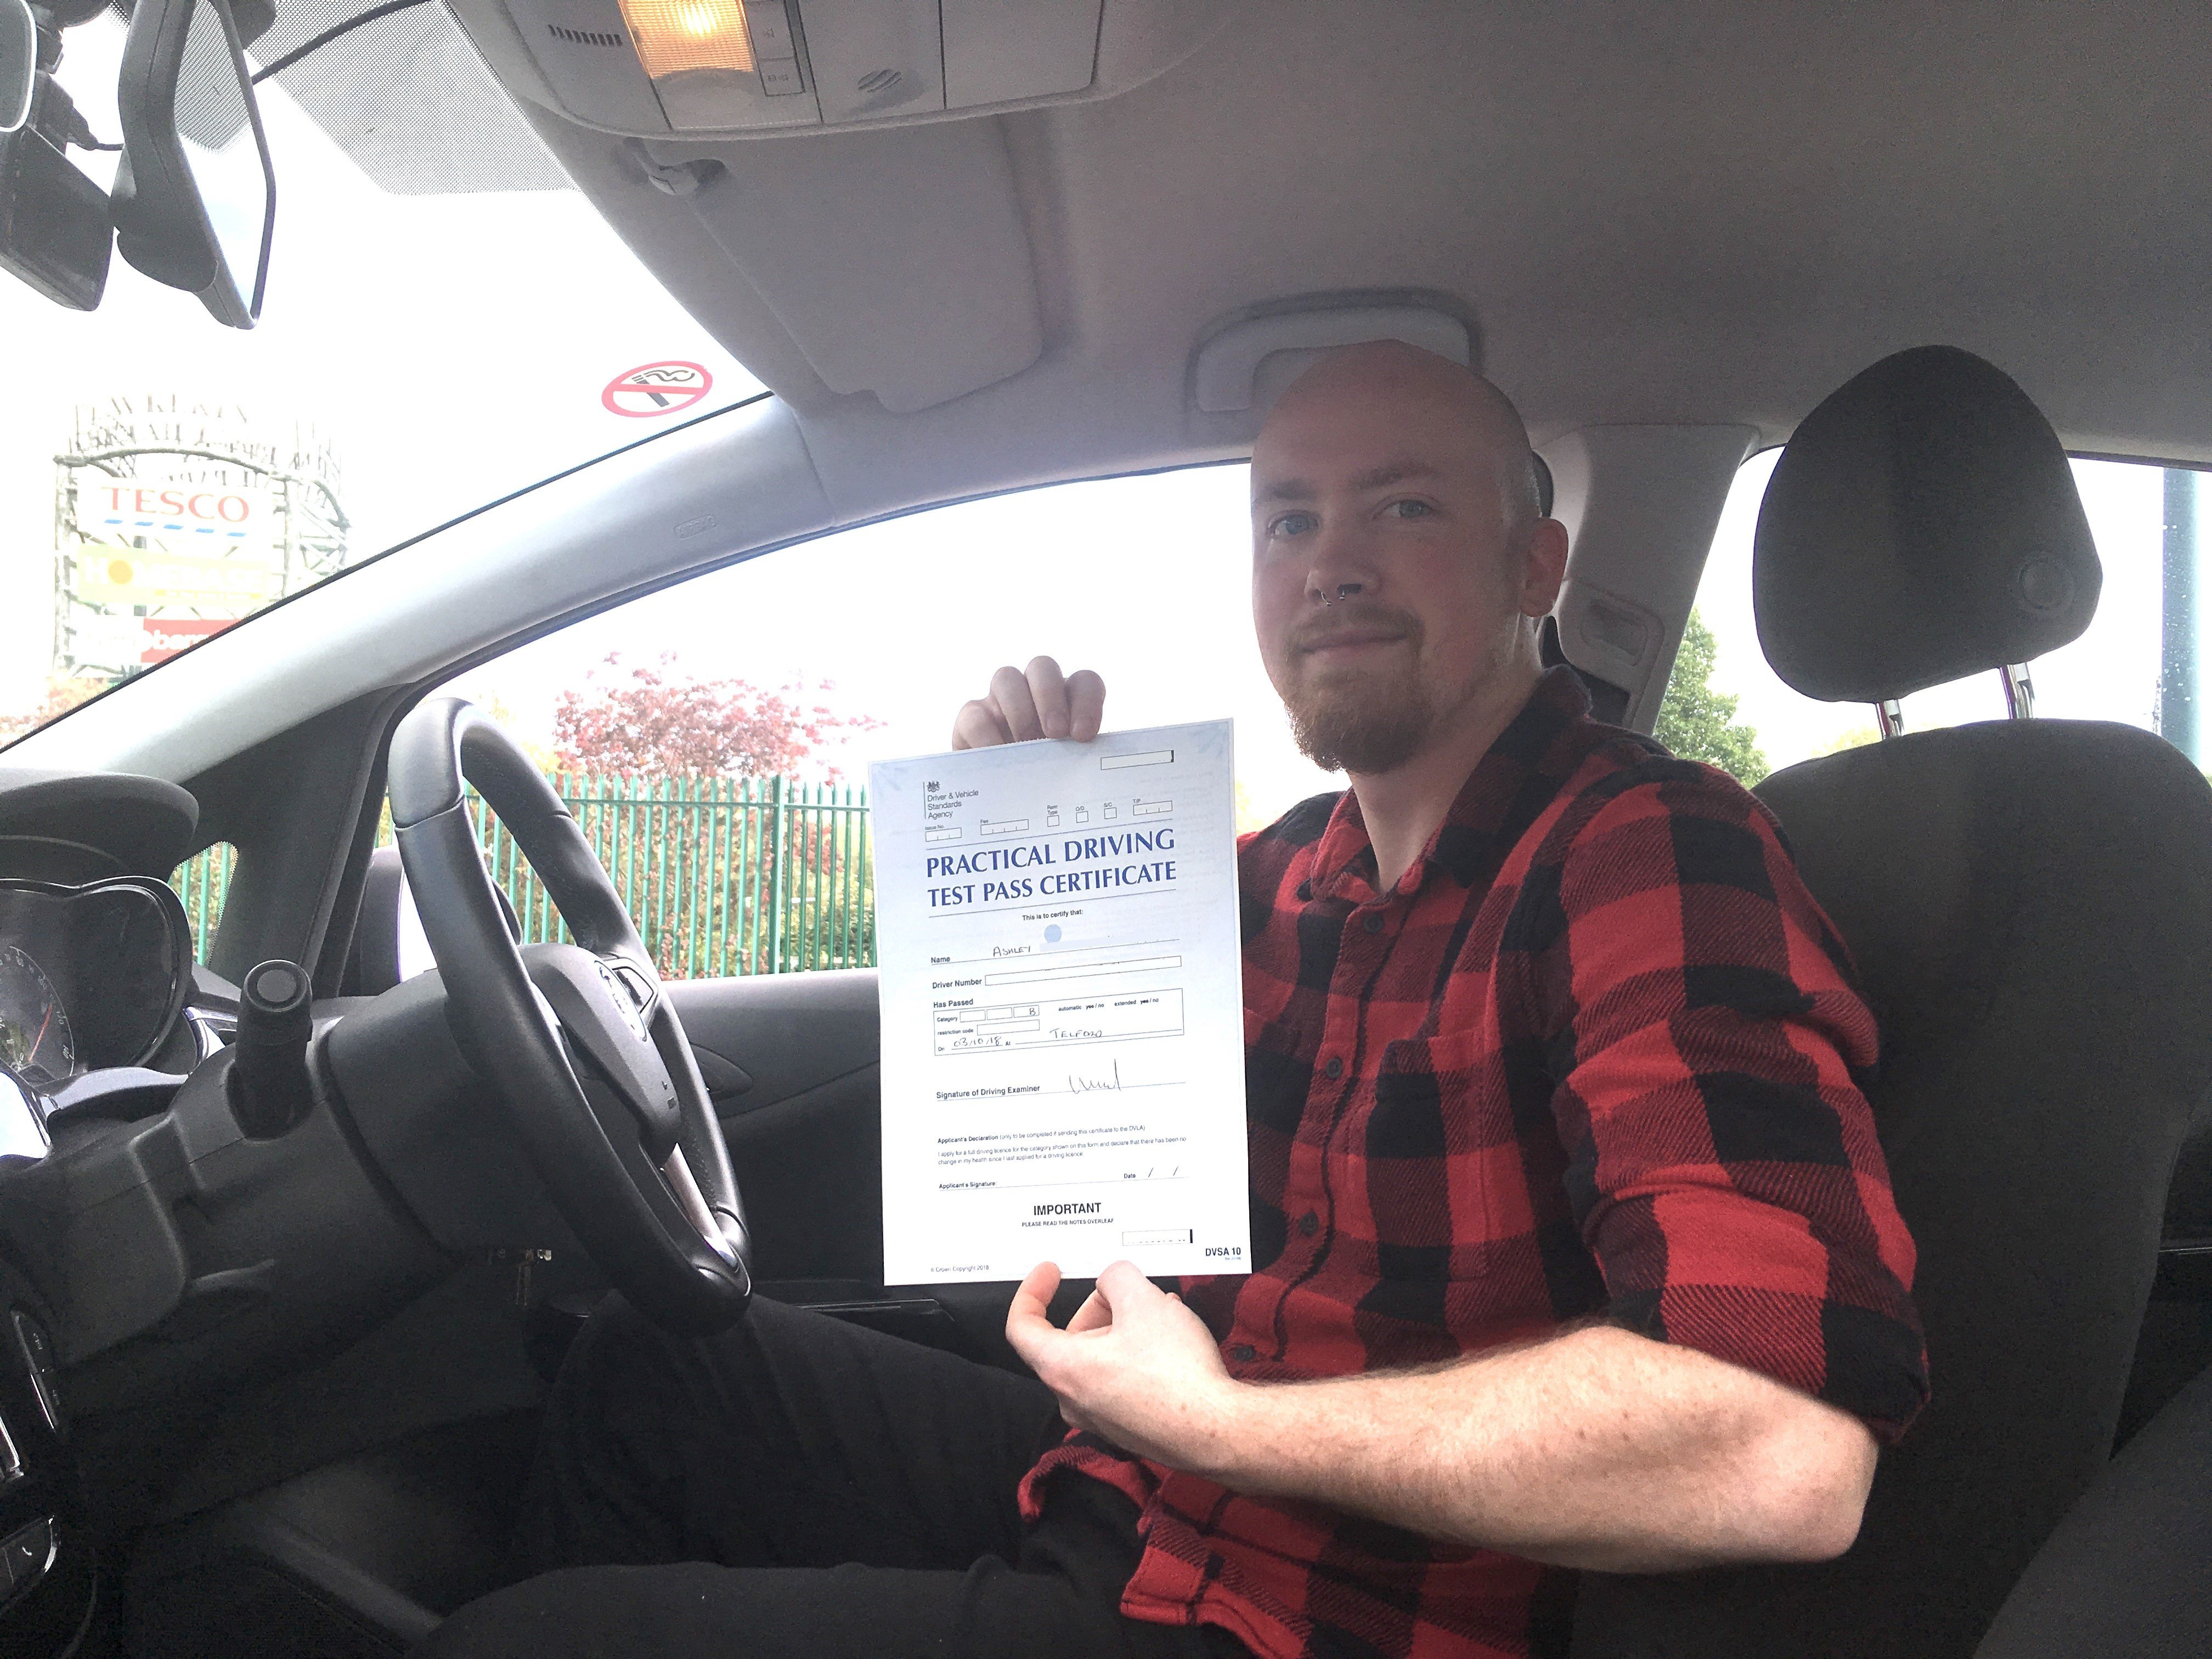 Driving Test Pass in Telford